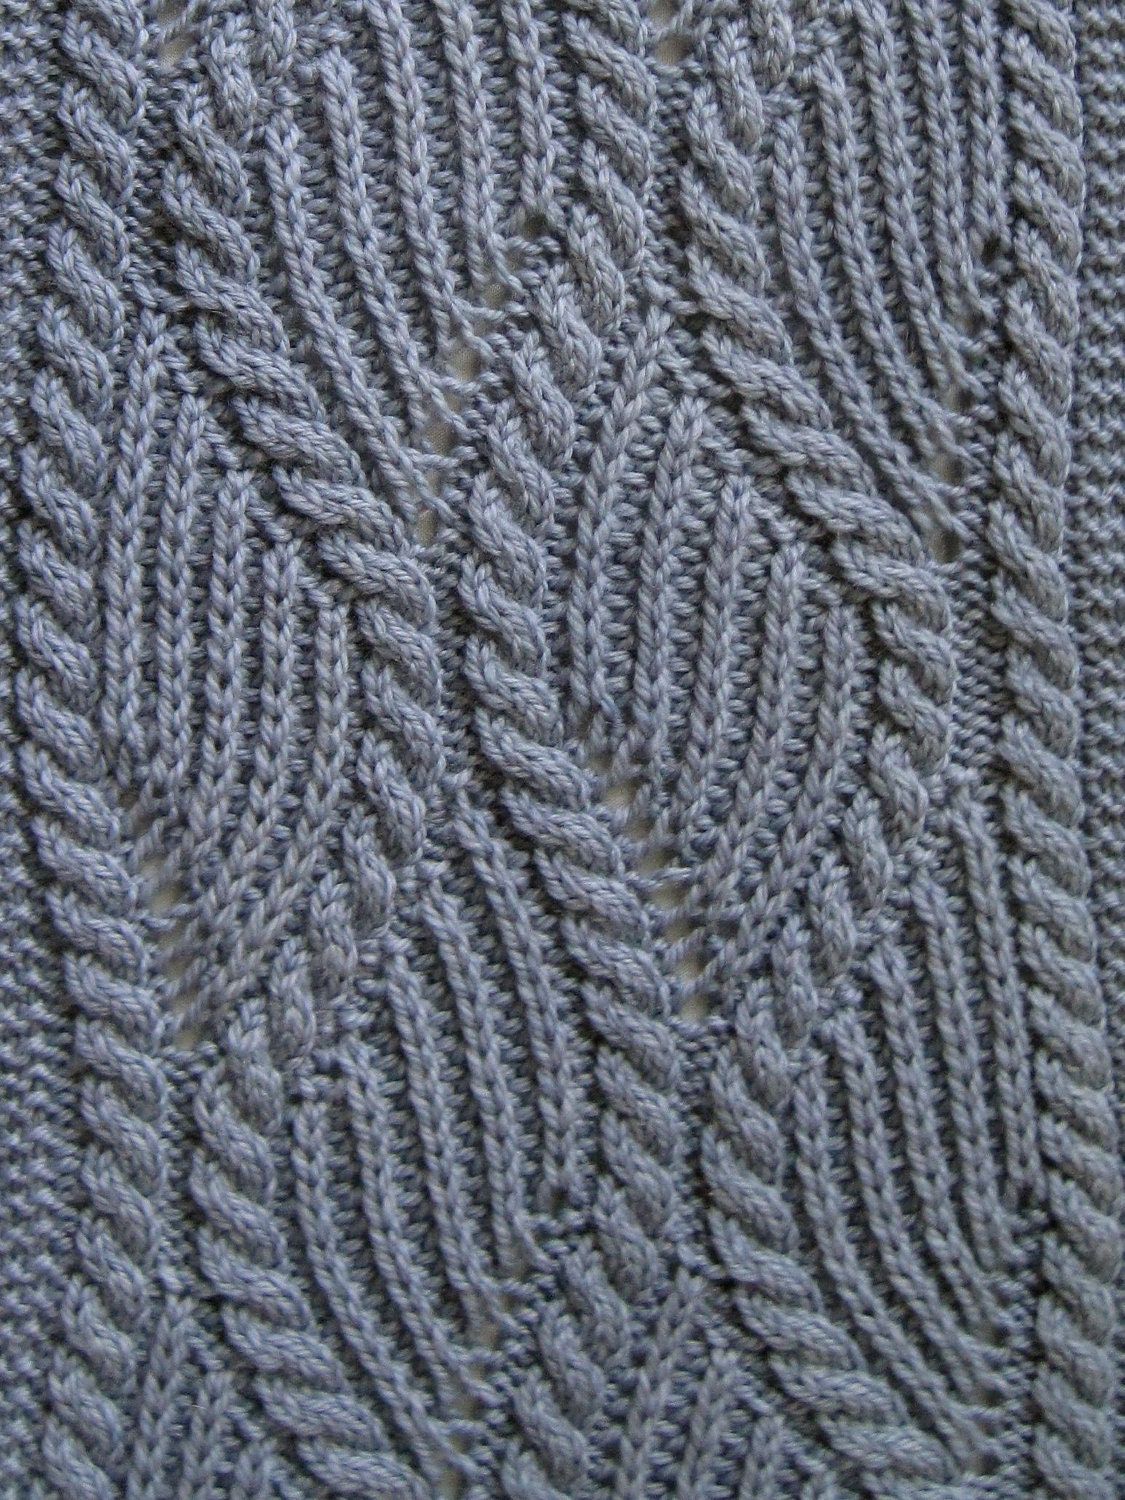 Cable Knit Scarf Pattern : Knit Scarf Pattern: Brioche and Traveling Cable Knitting